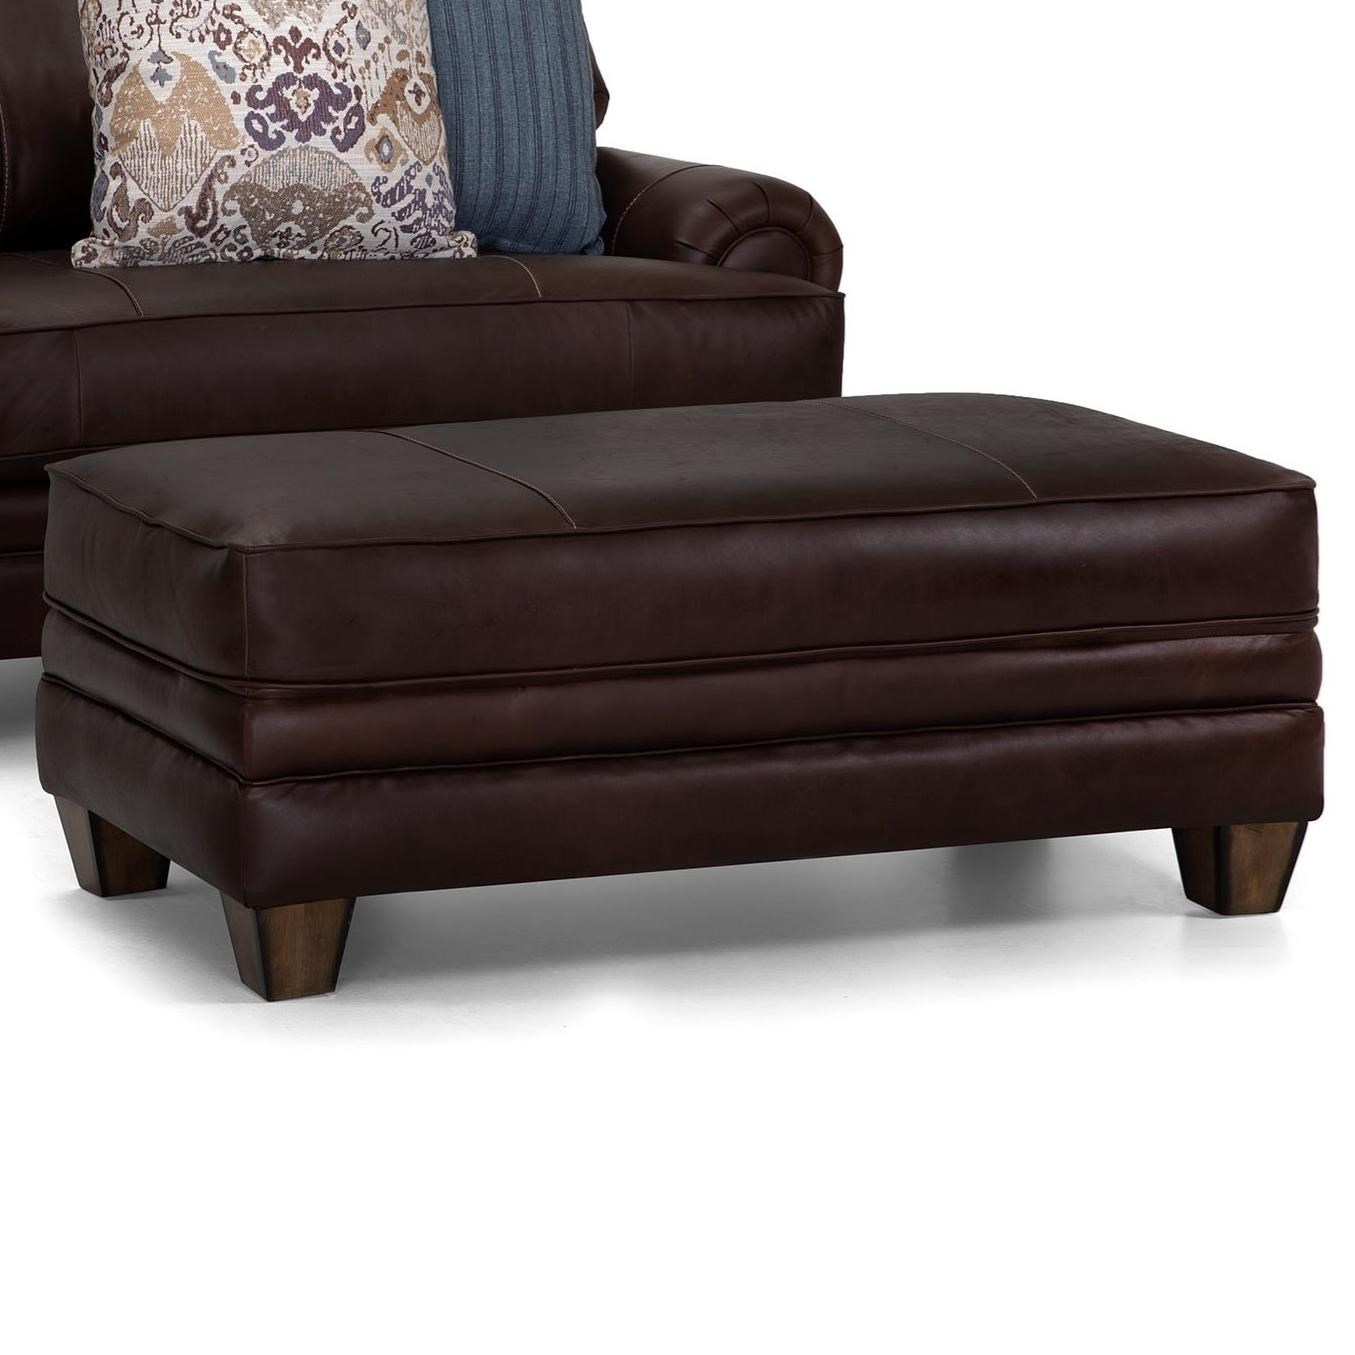 957 Ottoman by Franklin at Wilcox Furniture